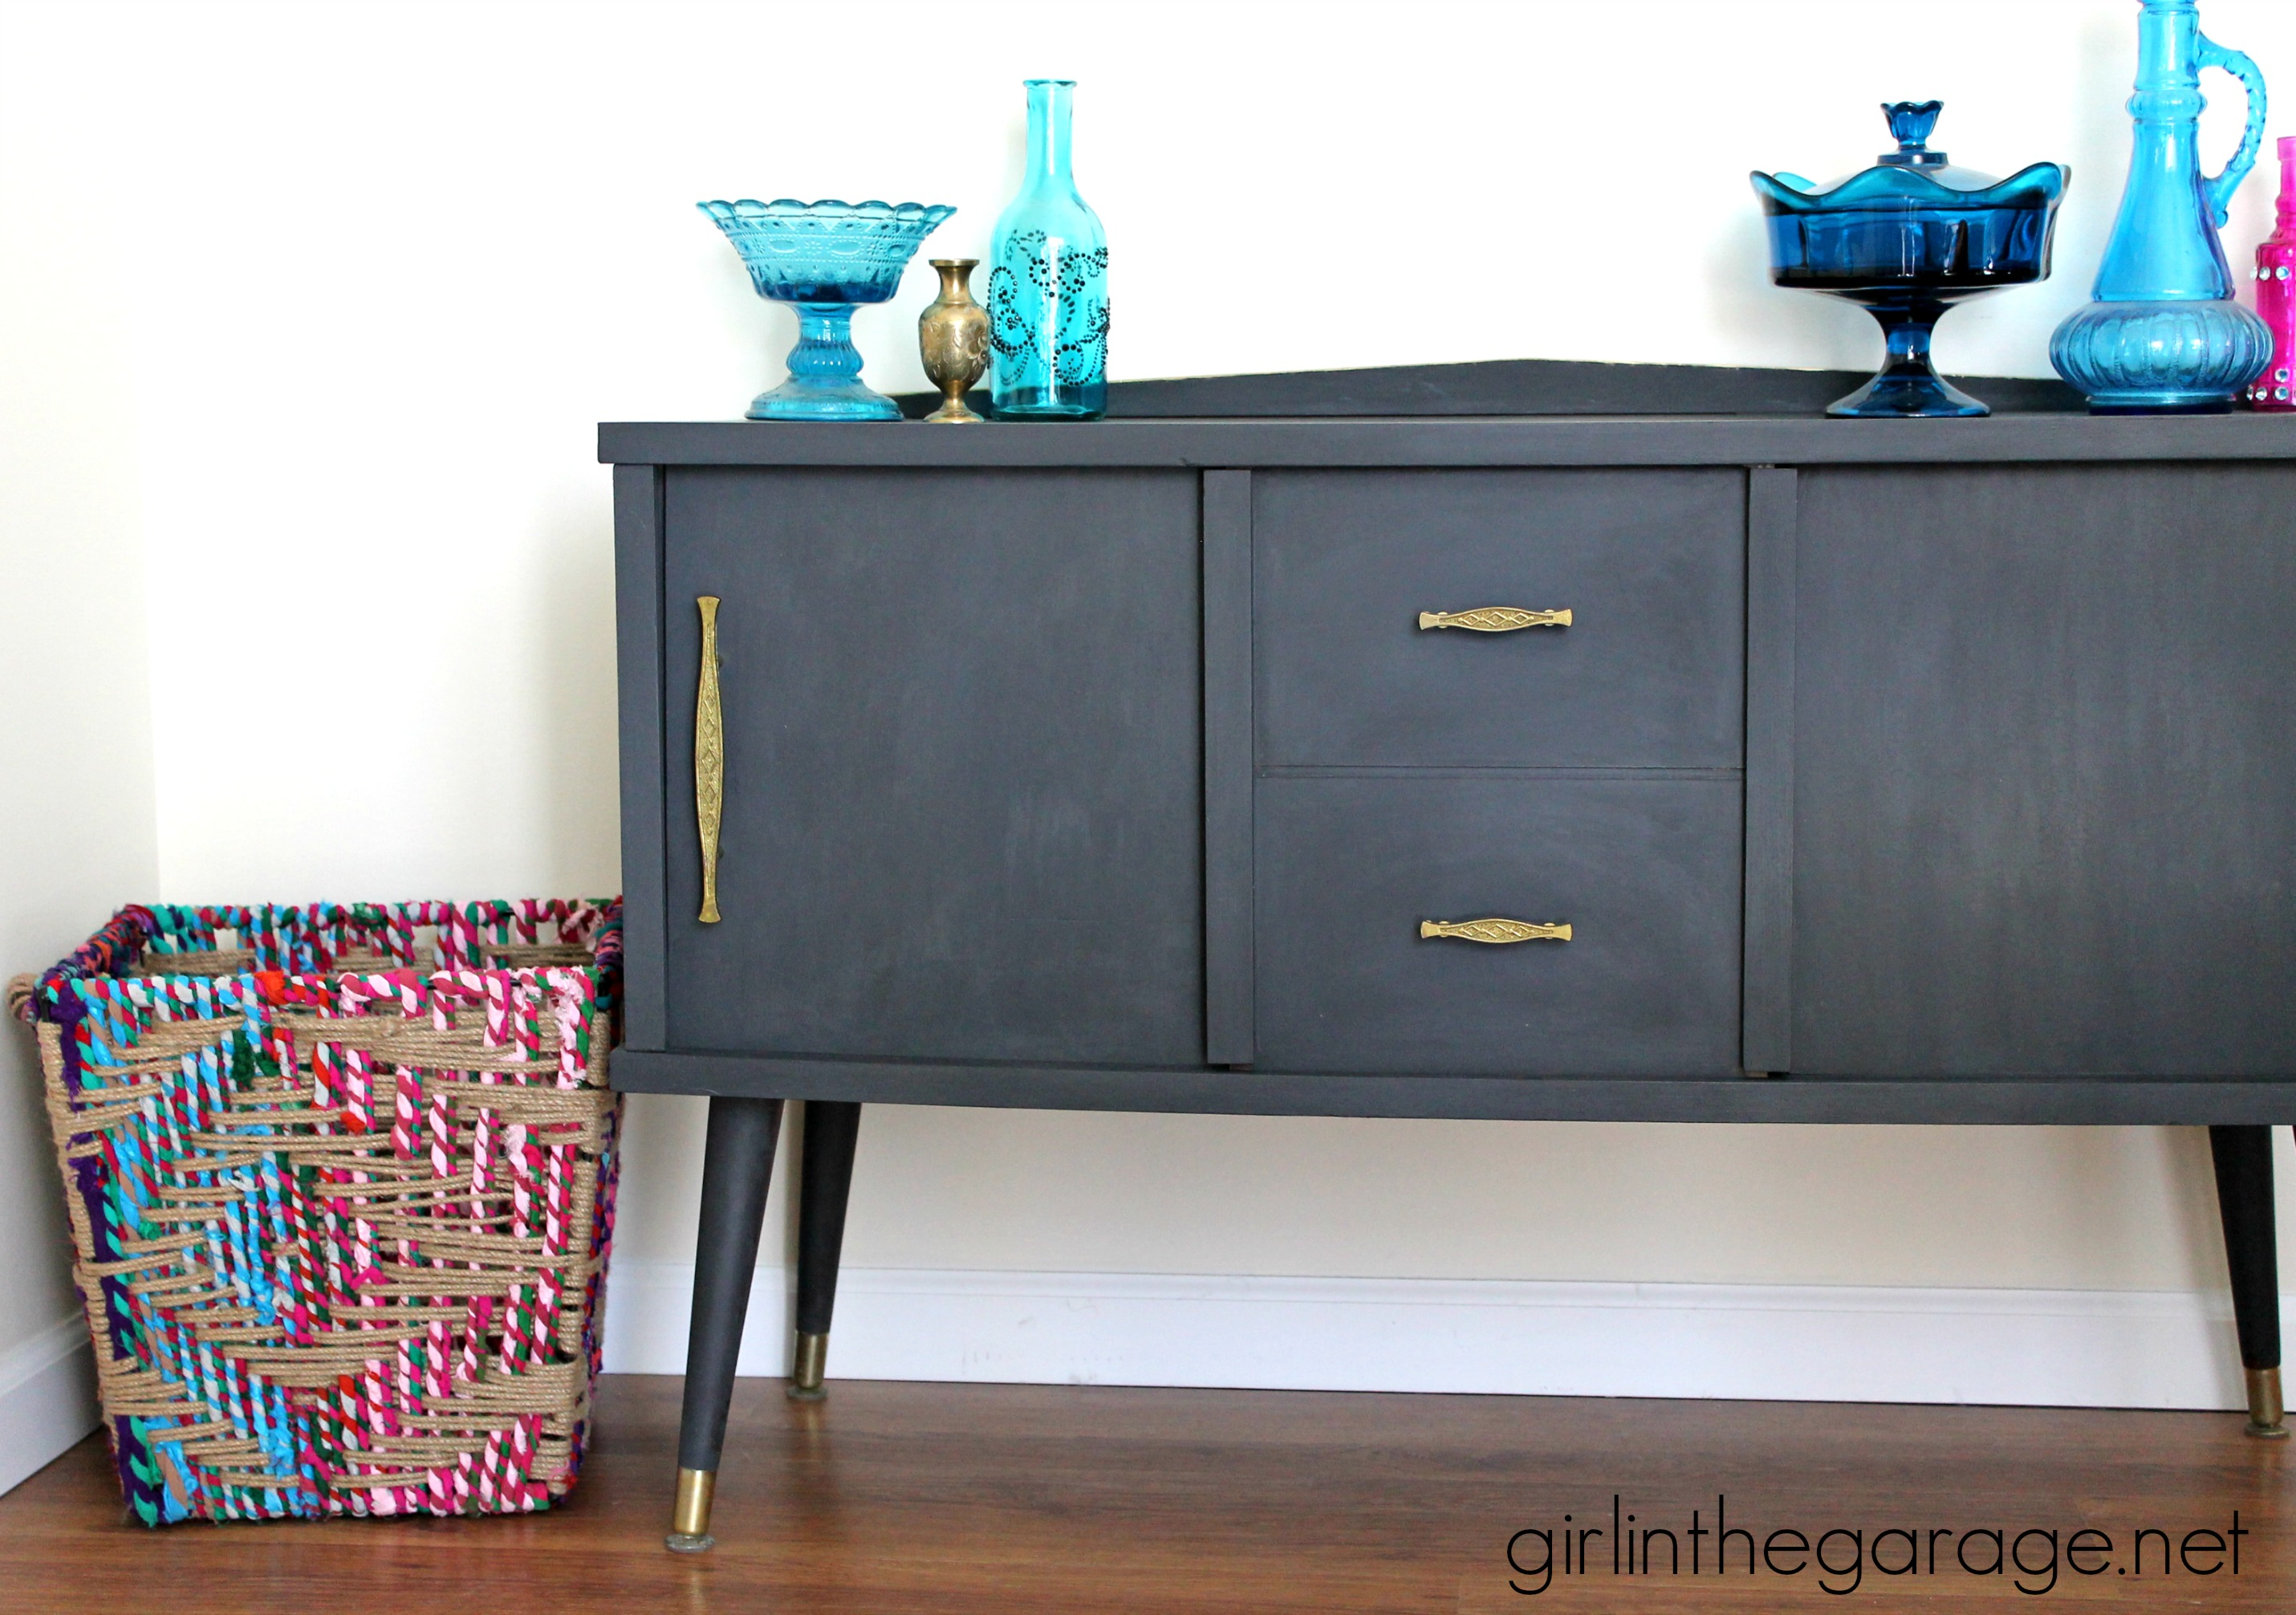 painted mid century furnitureMidcentury Makeover with a Surprise  Girl in the Garage